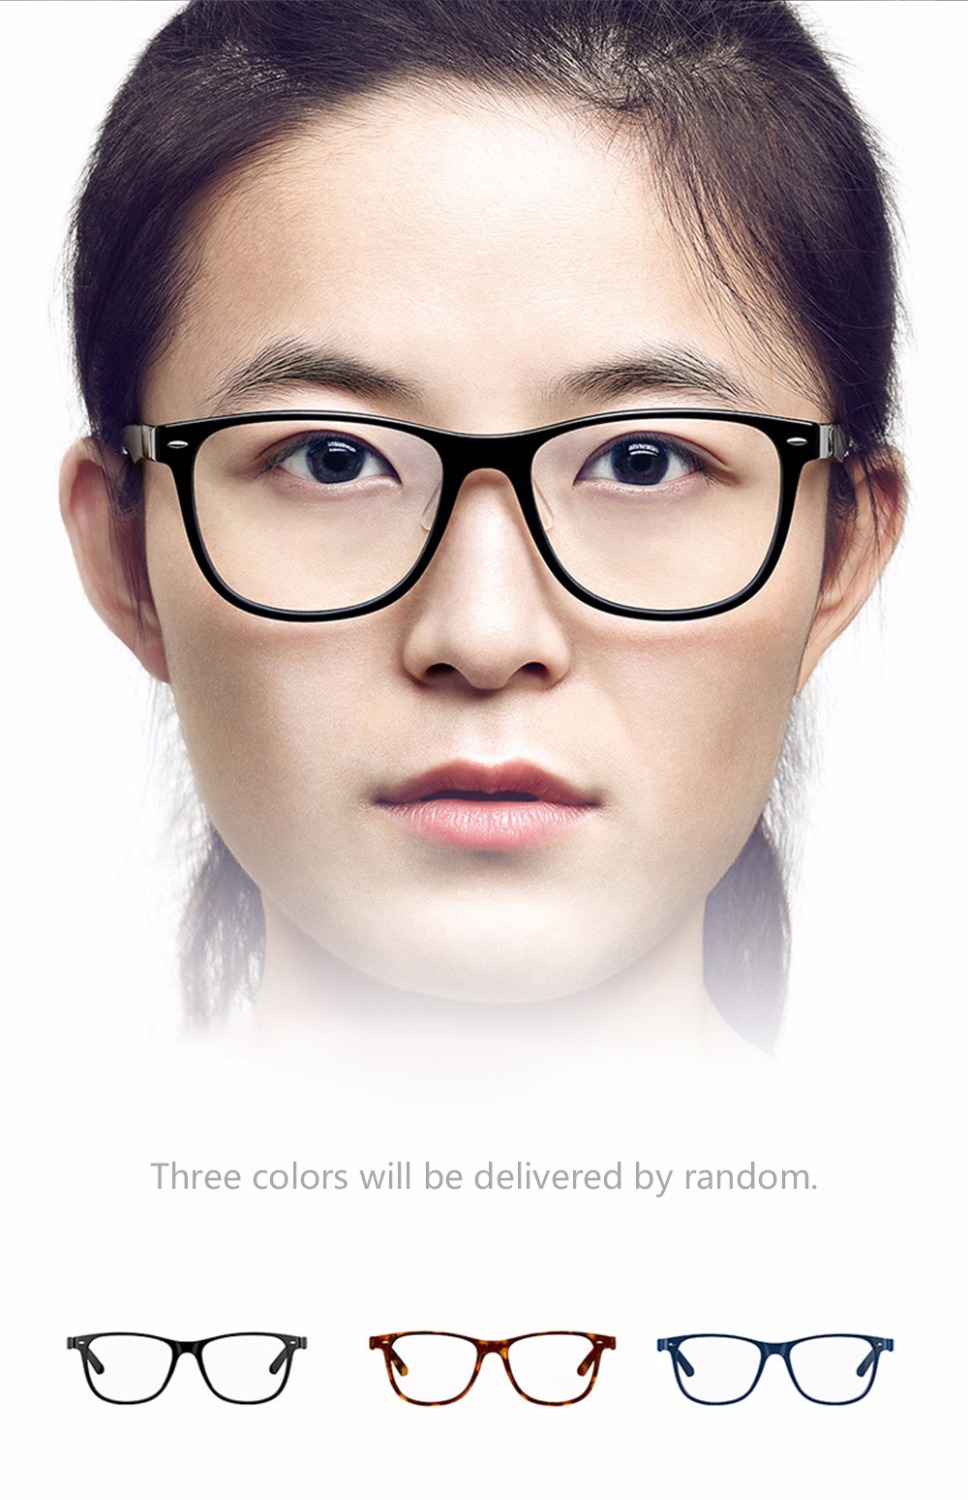 Xiaomi Mijia Qukan W1 Roidmi B1 Detachable Anti blue rays Protective Glass Eye Protector For Man Woman Play Phone Computer Games in 3D Glasses Virtual Reality Glasses from Consumer Electronics